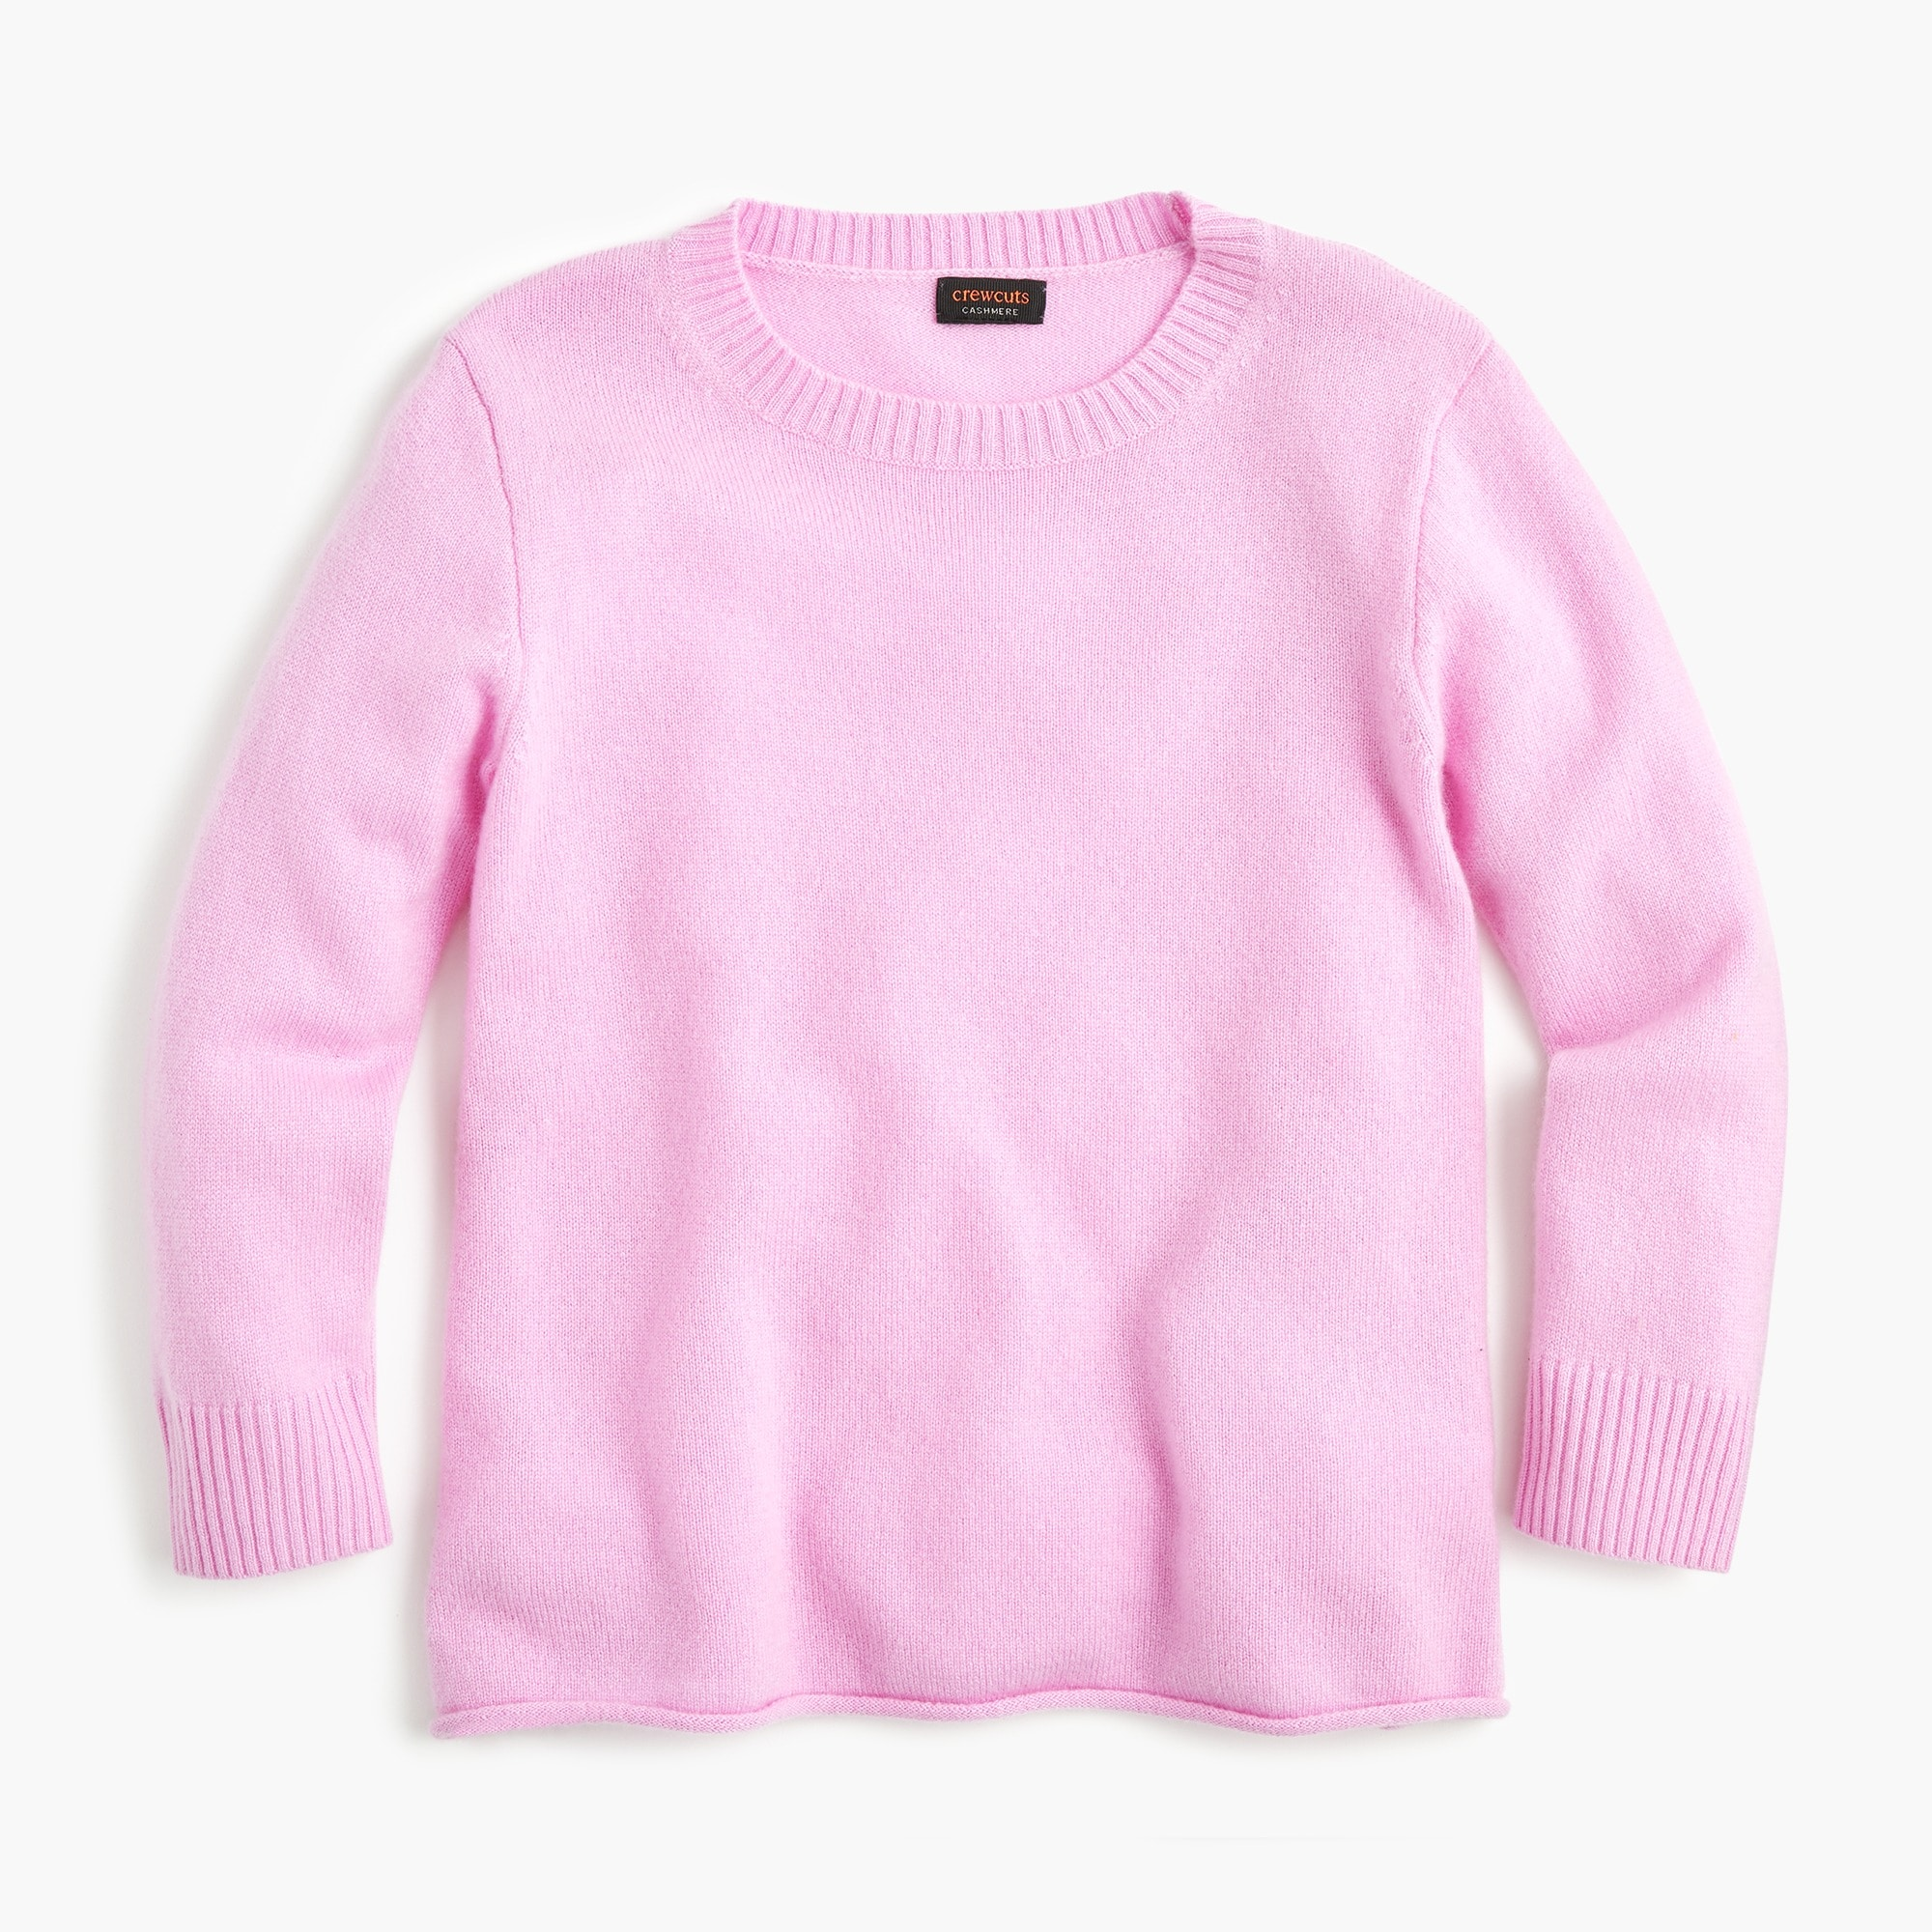 girls Girls' cashmere A-line popover sweater